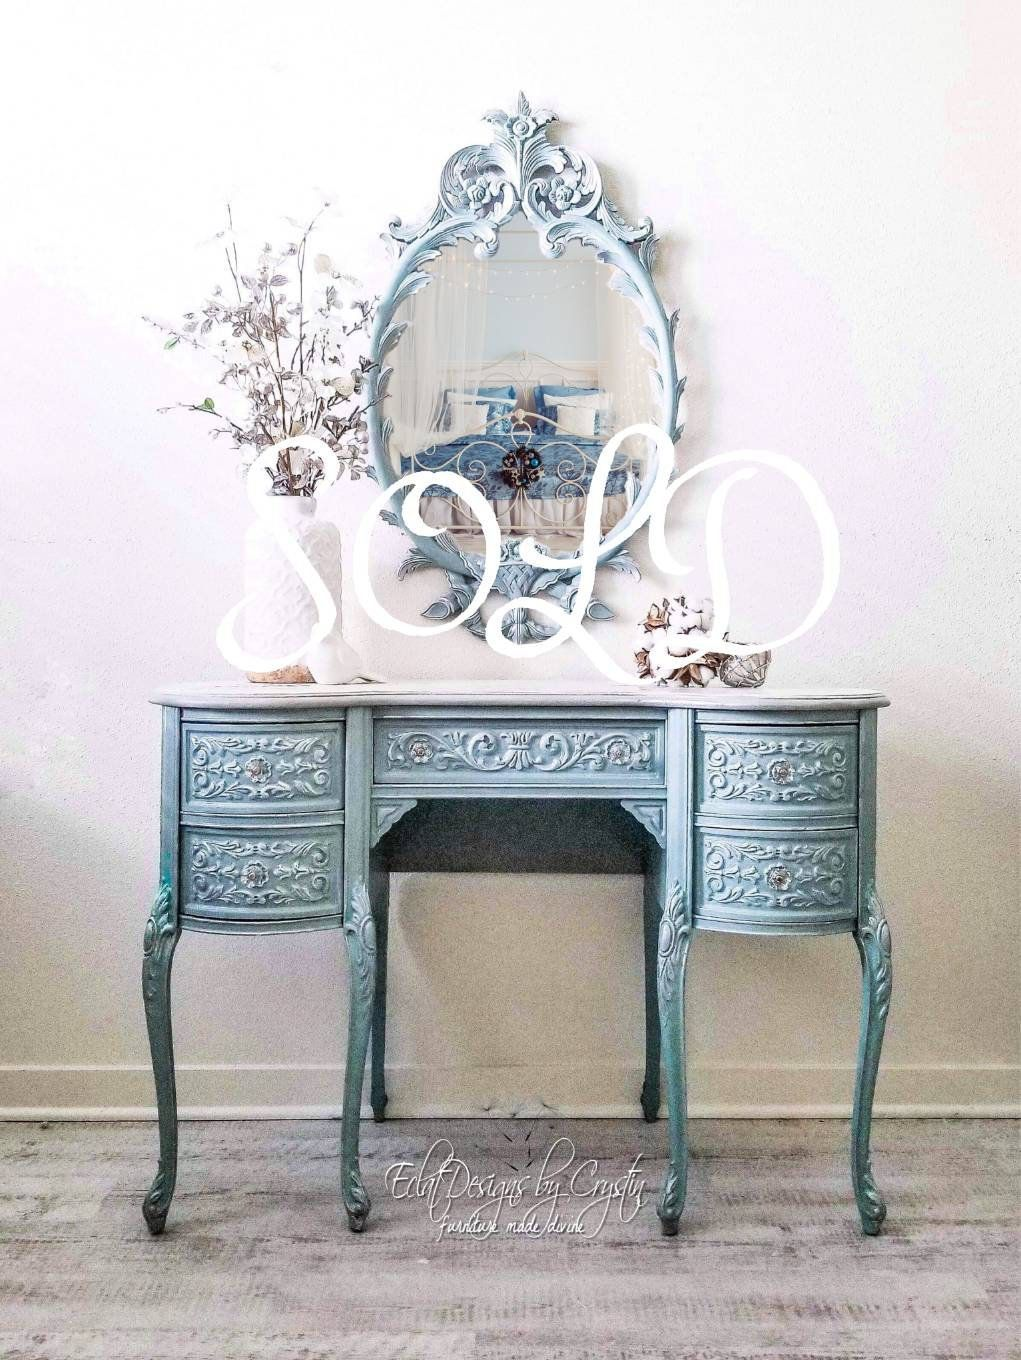 Sold Frozen Vanity Table With Mirror Painted Furniture Designs Vanity Table Unique Table Design